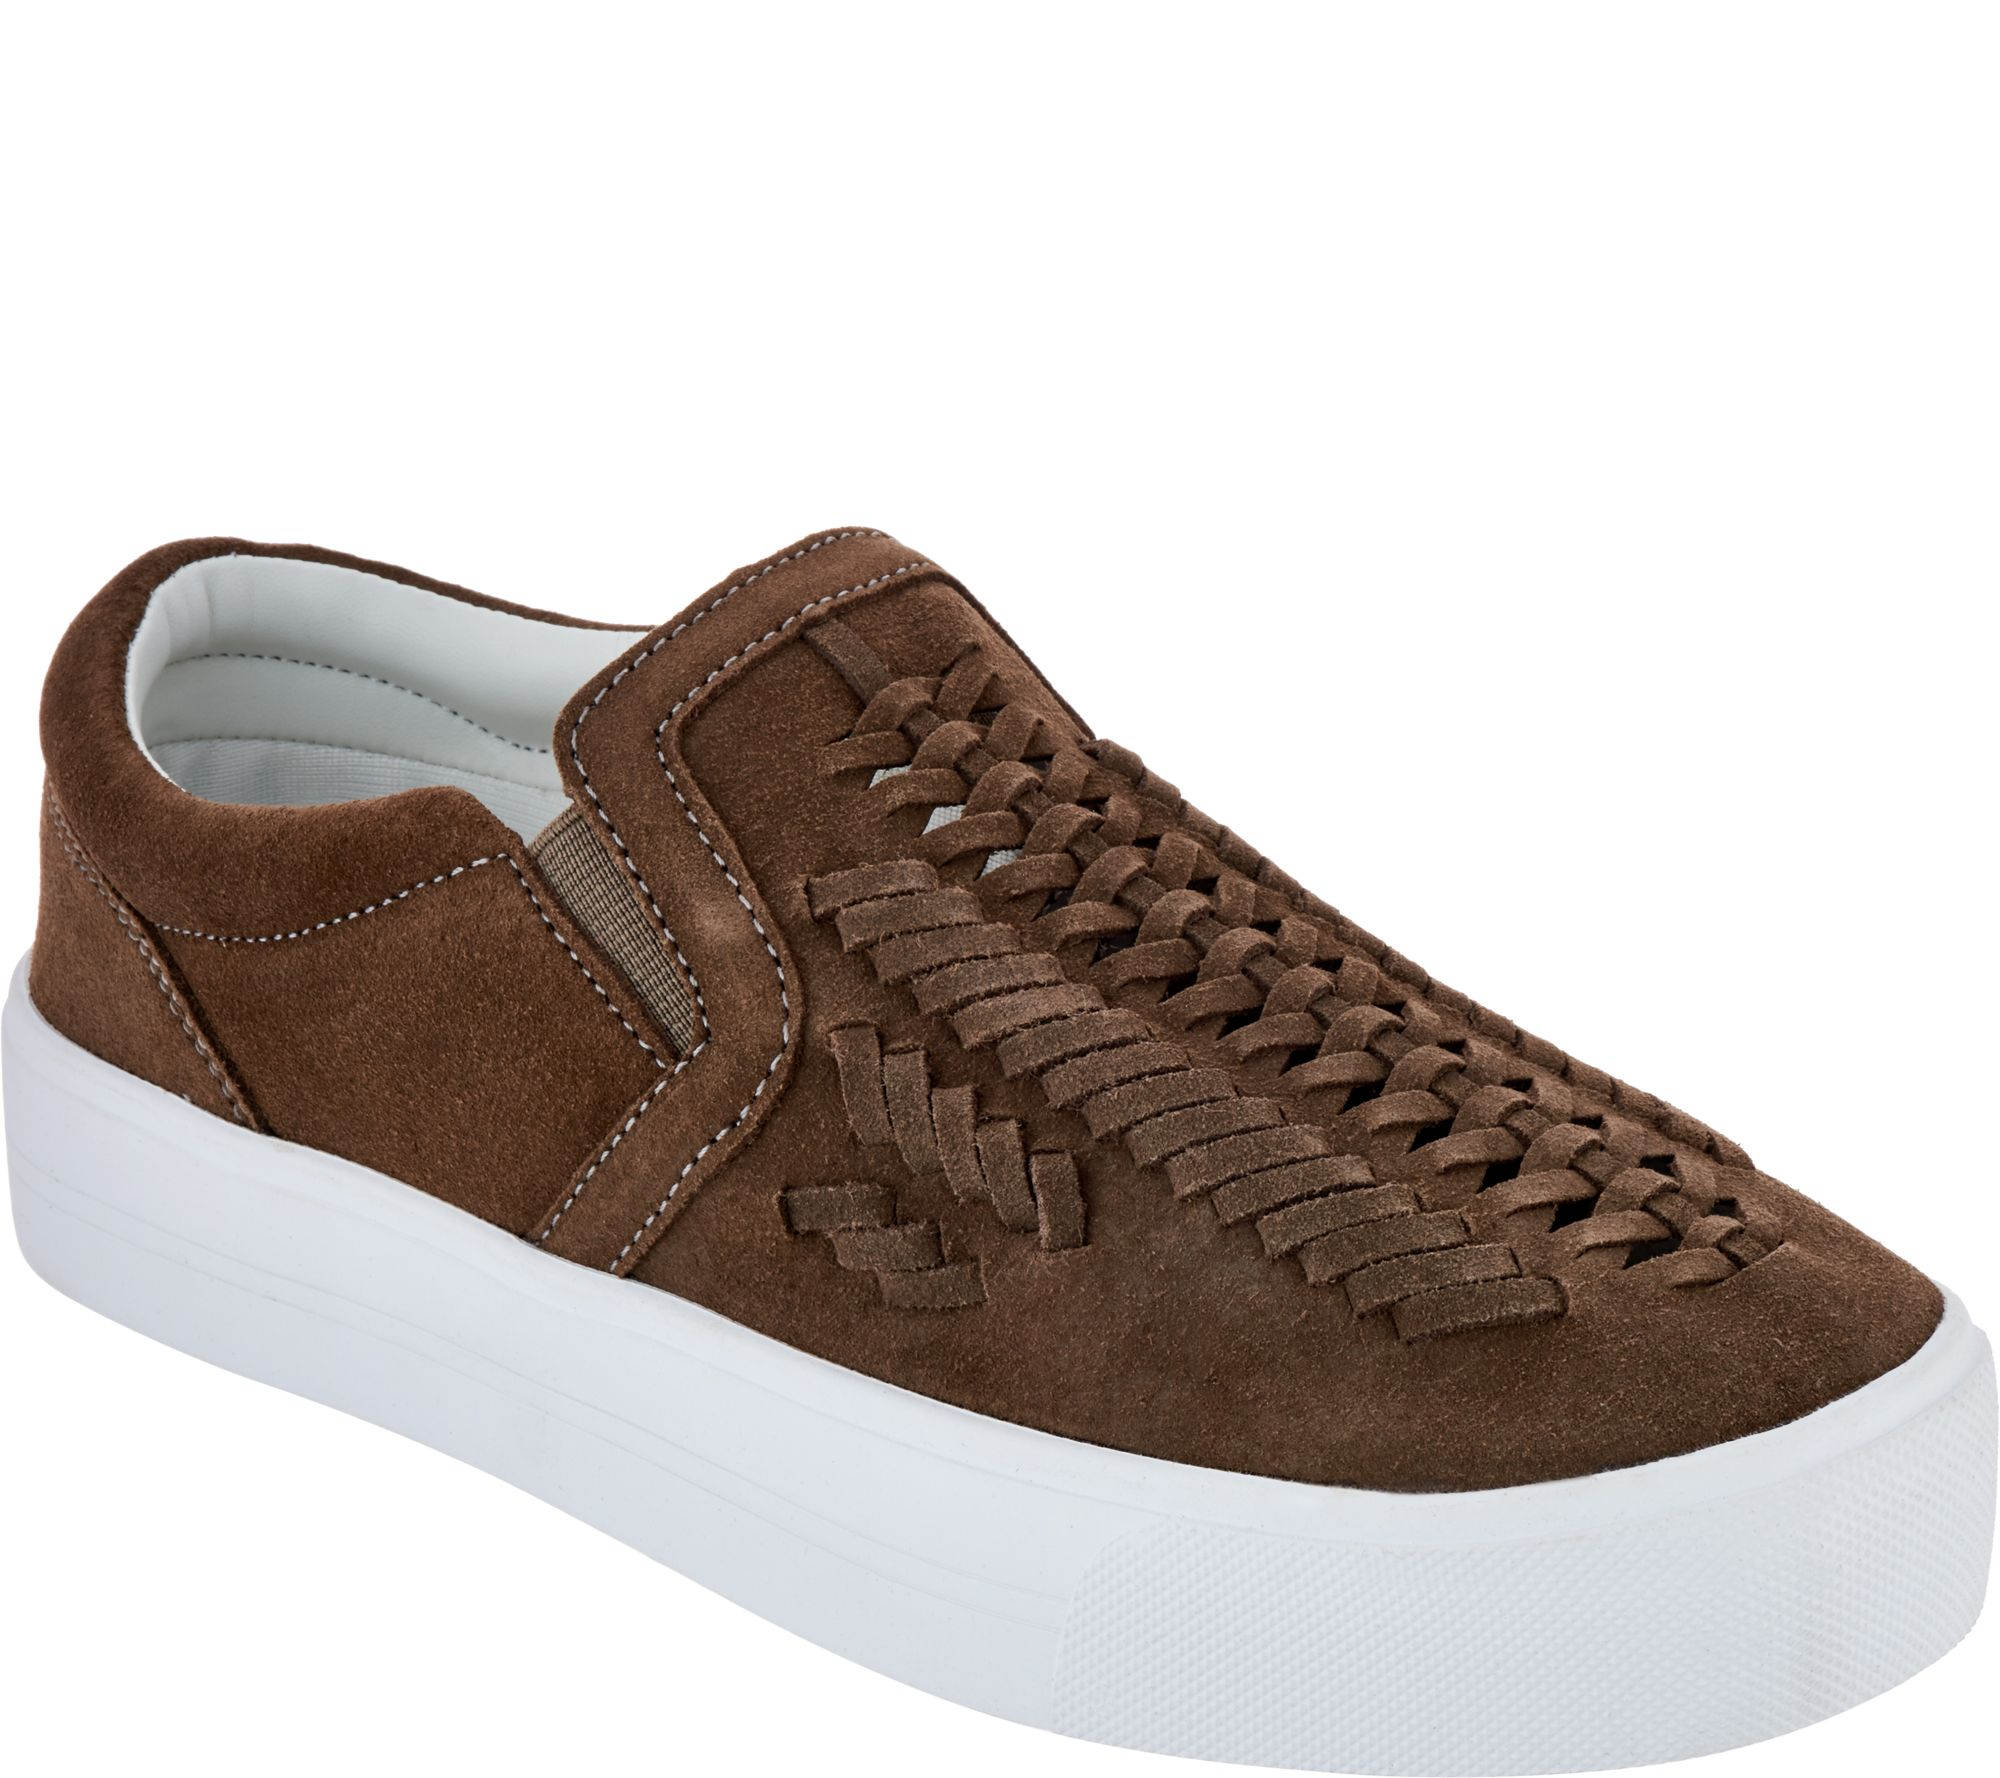 Plantar Fasciitis Shoes Browns Shoes